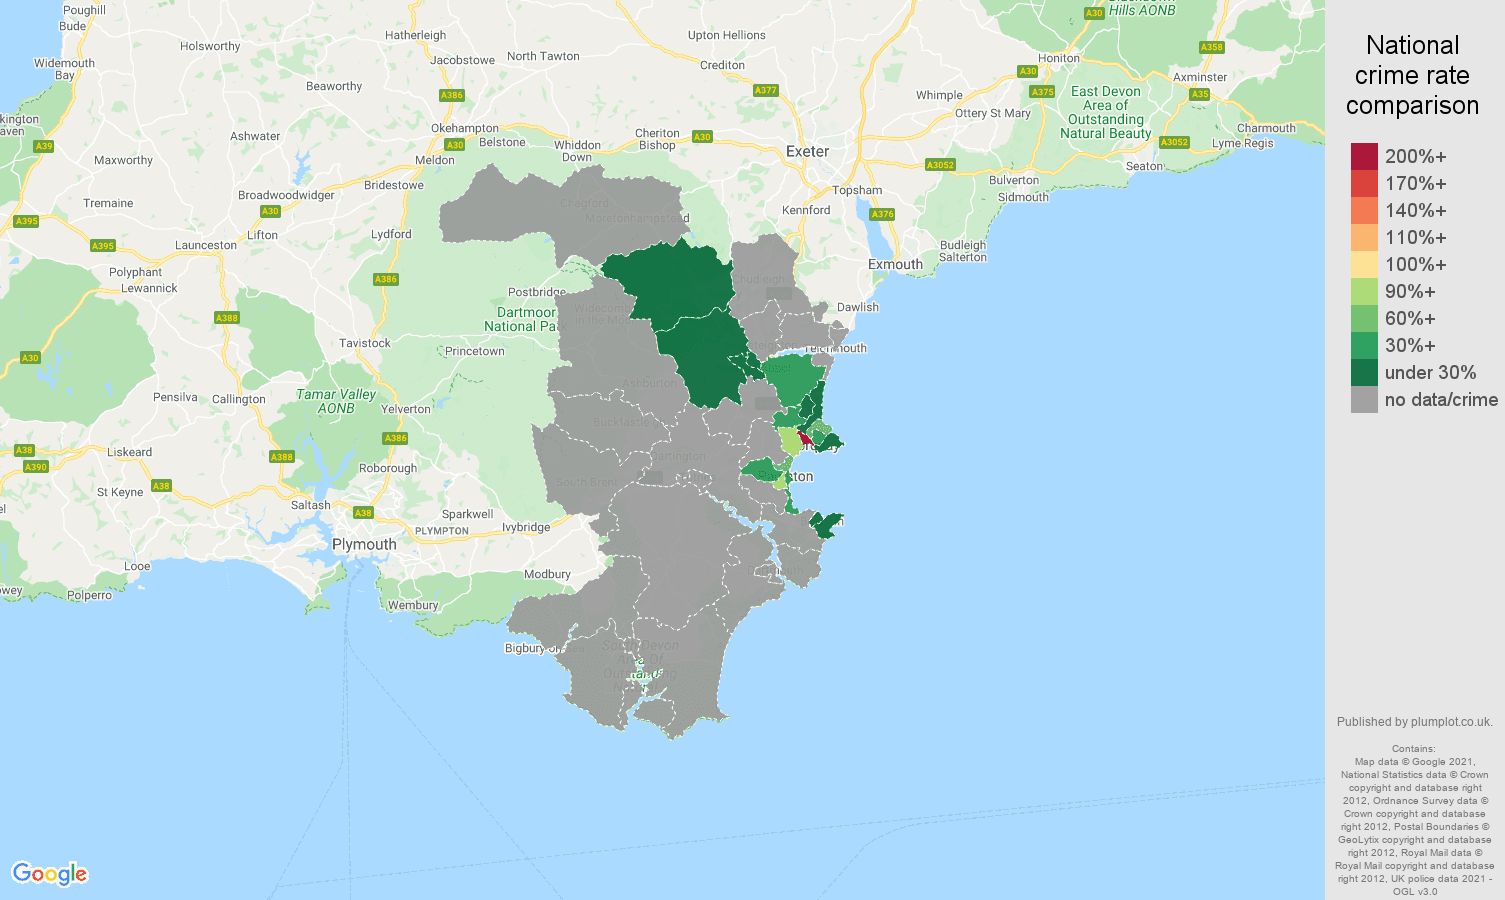 Torquay theft from the person crime rate comparison map